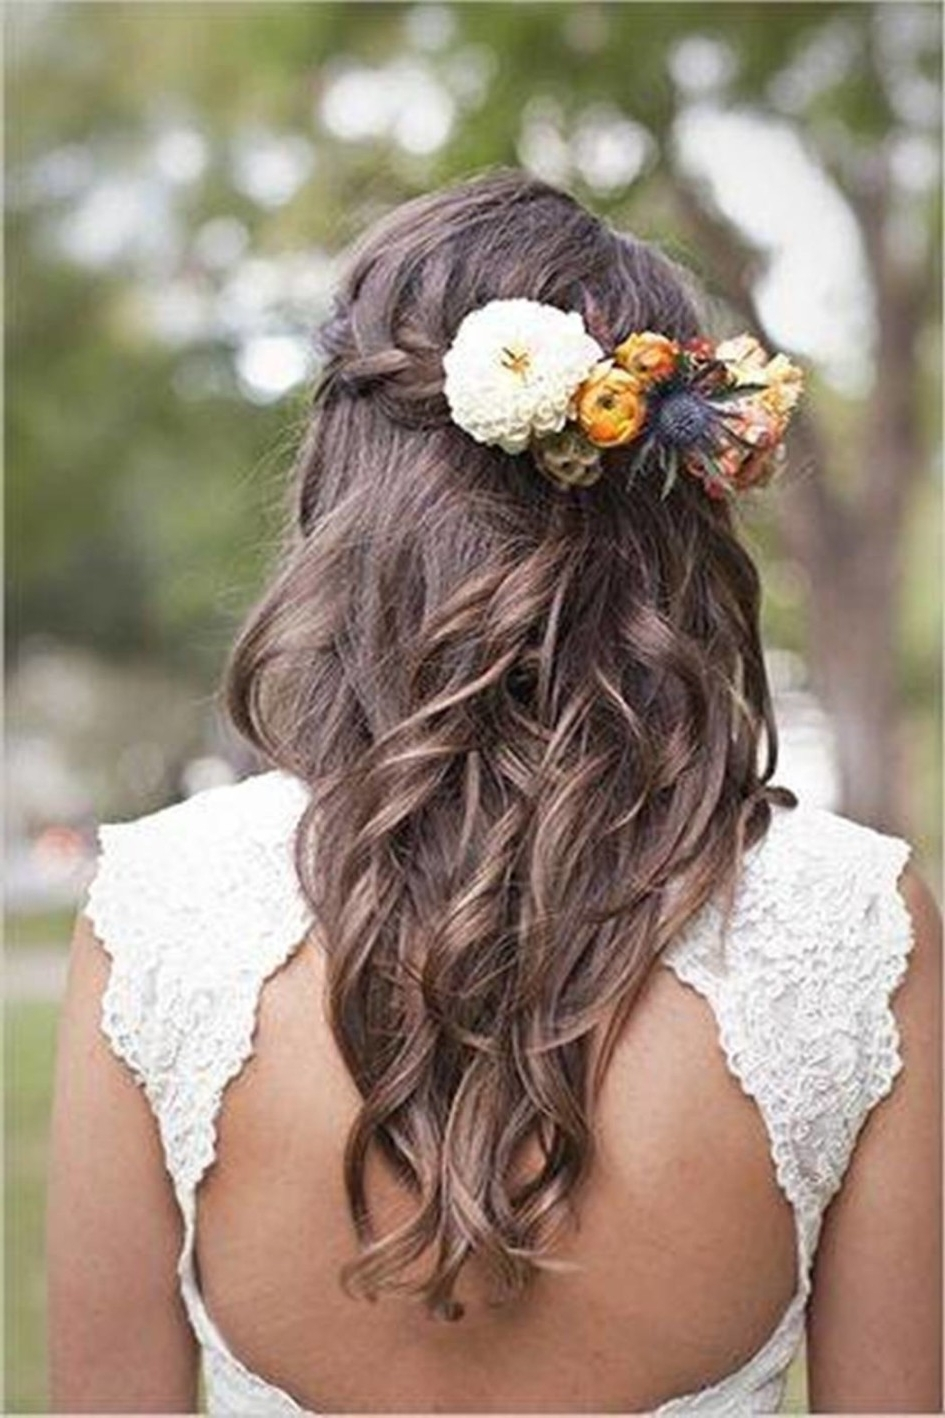 Wedding Hairstyles Ideas: Wedding Hair Flowers Braid Combined With Intended For Current Wedding Hairstyles For Long Hair With Flowers (View 7 of 15)